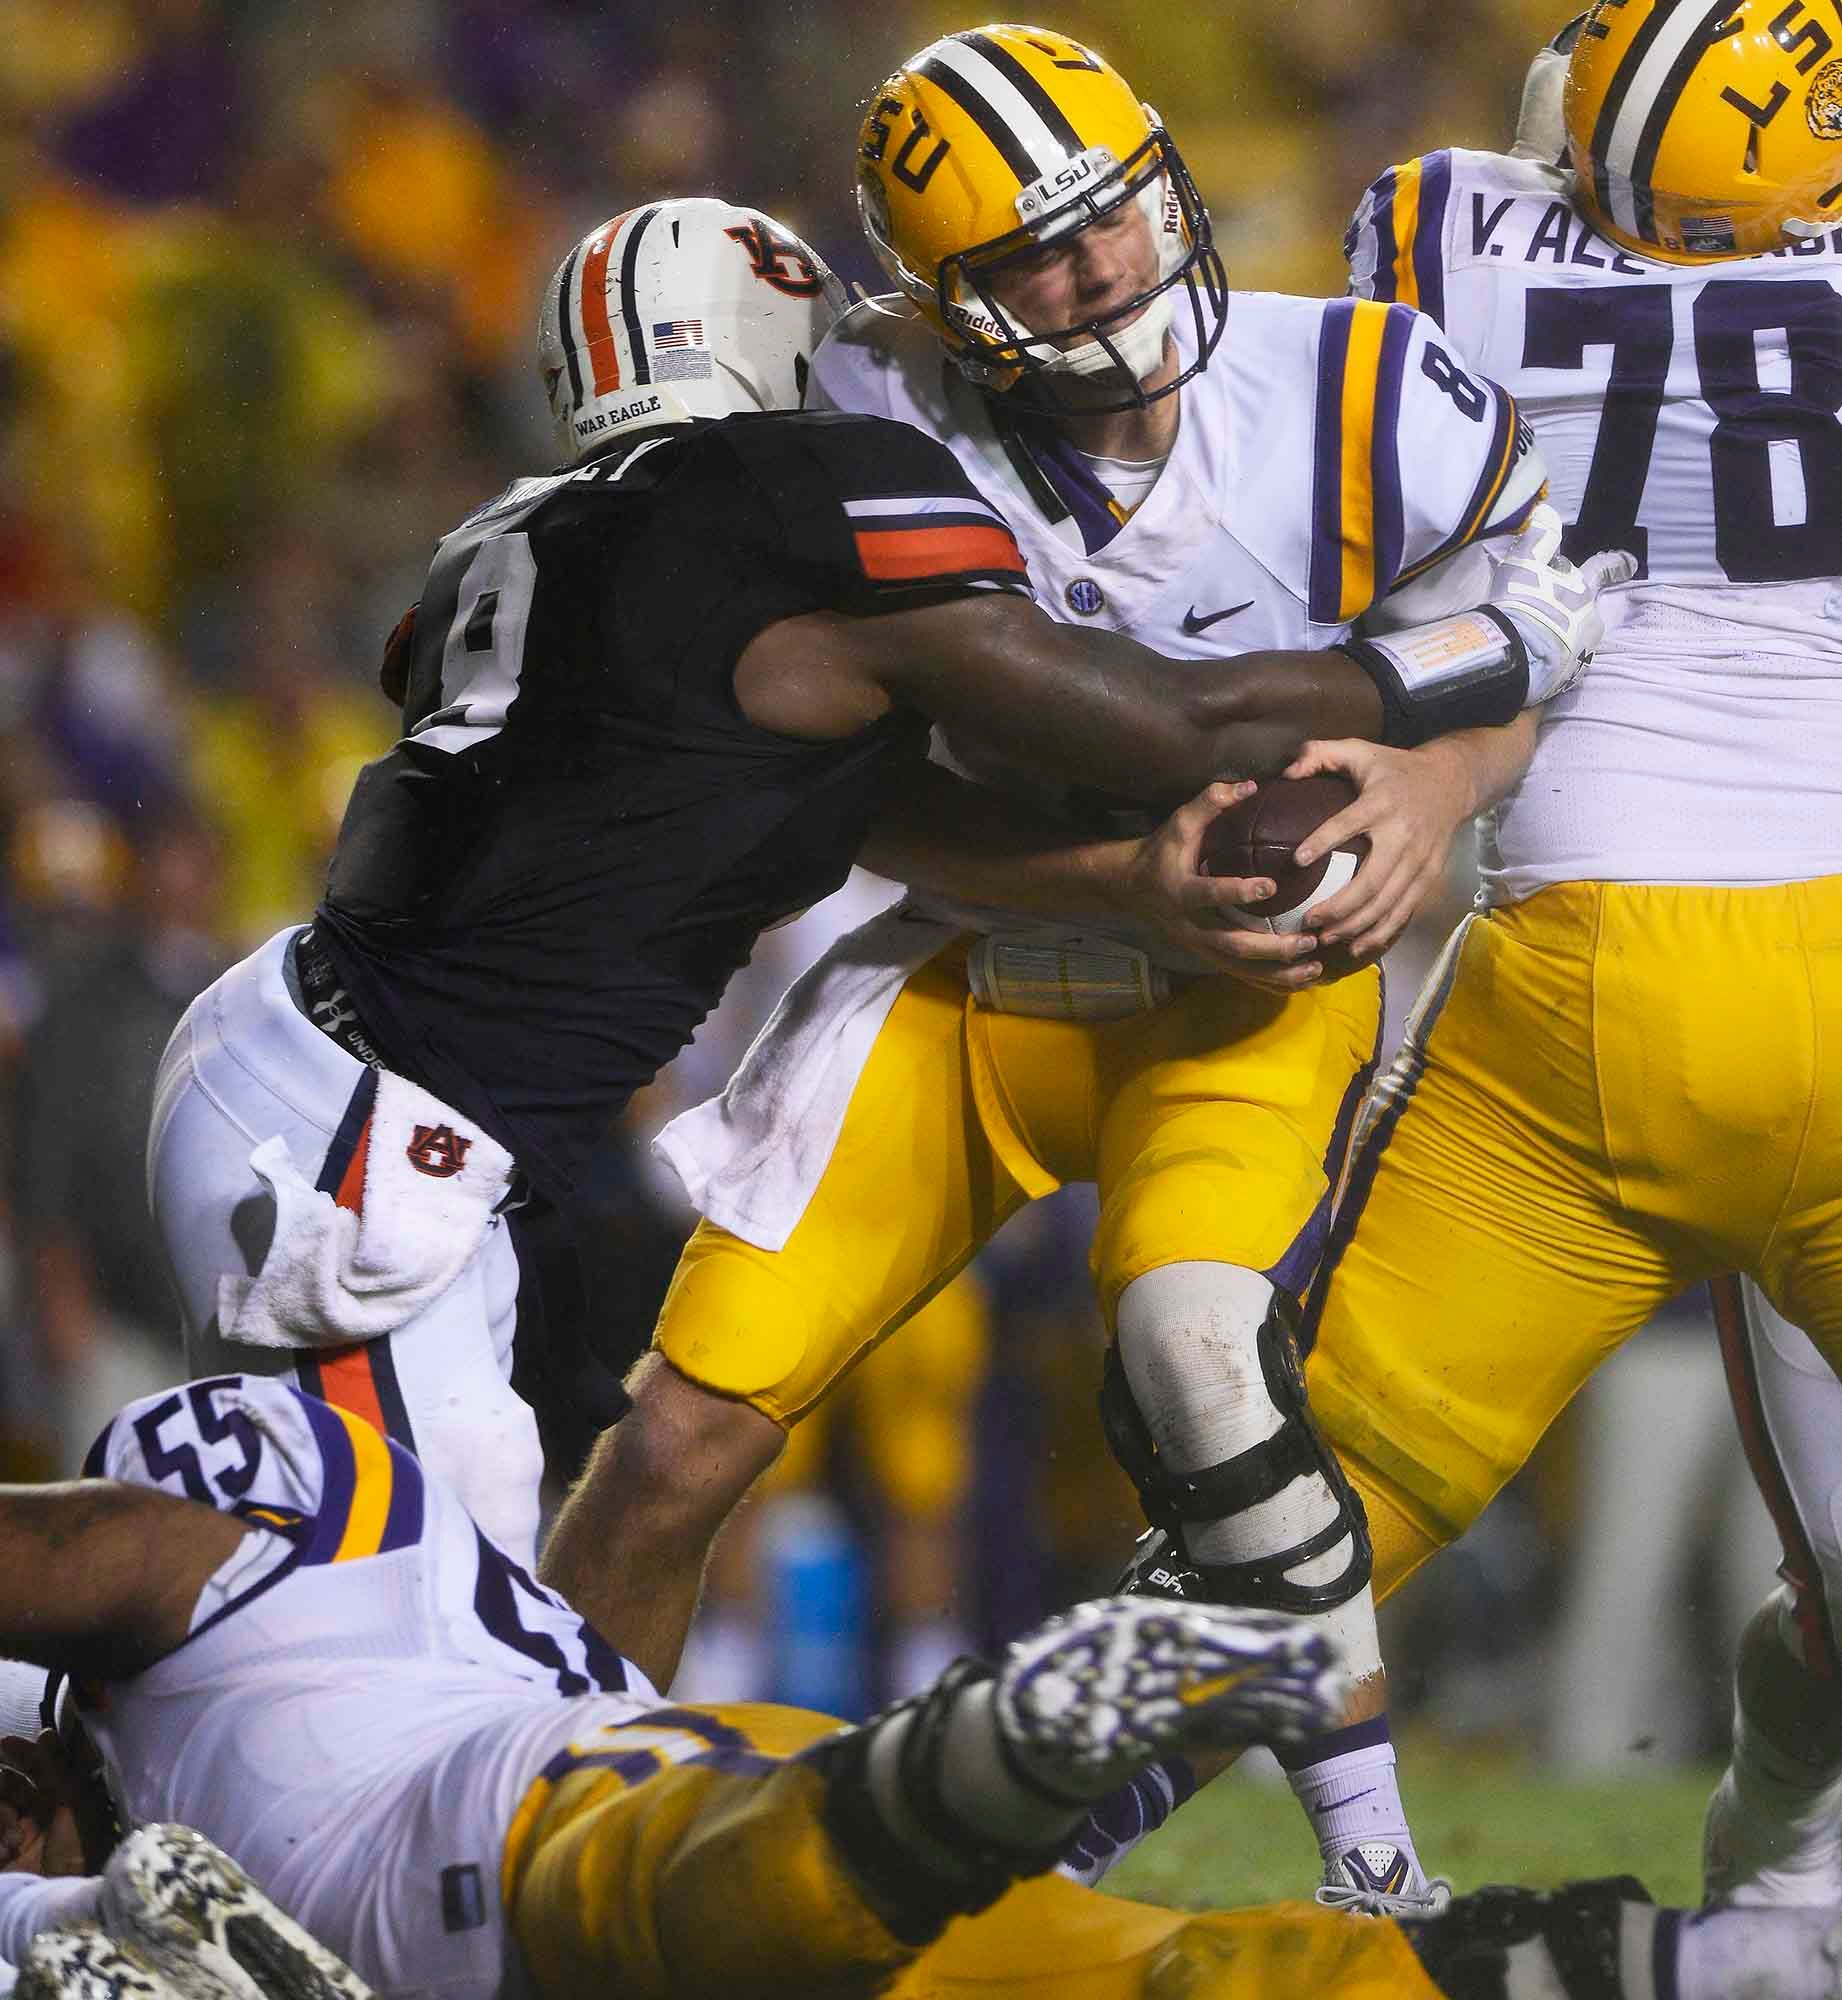 Auburn made some good plays against LSU, including this sack of quarterback Zach Mettenberger that contributed to his -7 rushing yards. (Source: Todd van Emst/Auburn University)